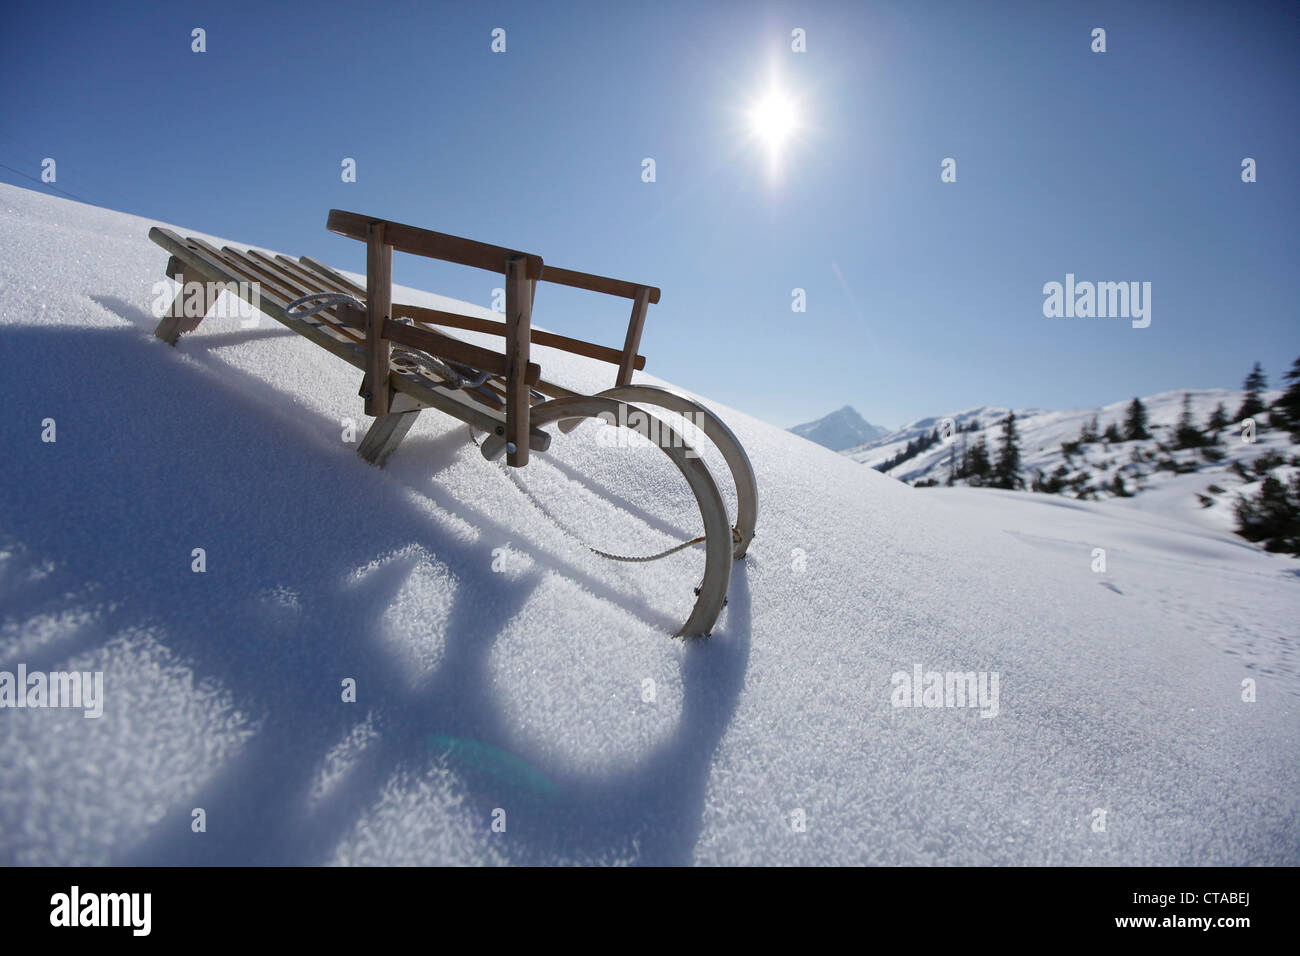 Sledge with back rest for young child, Kloesterle, Arlberg, Tyrol, Austria - Stock Image